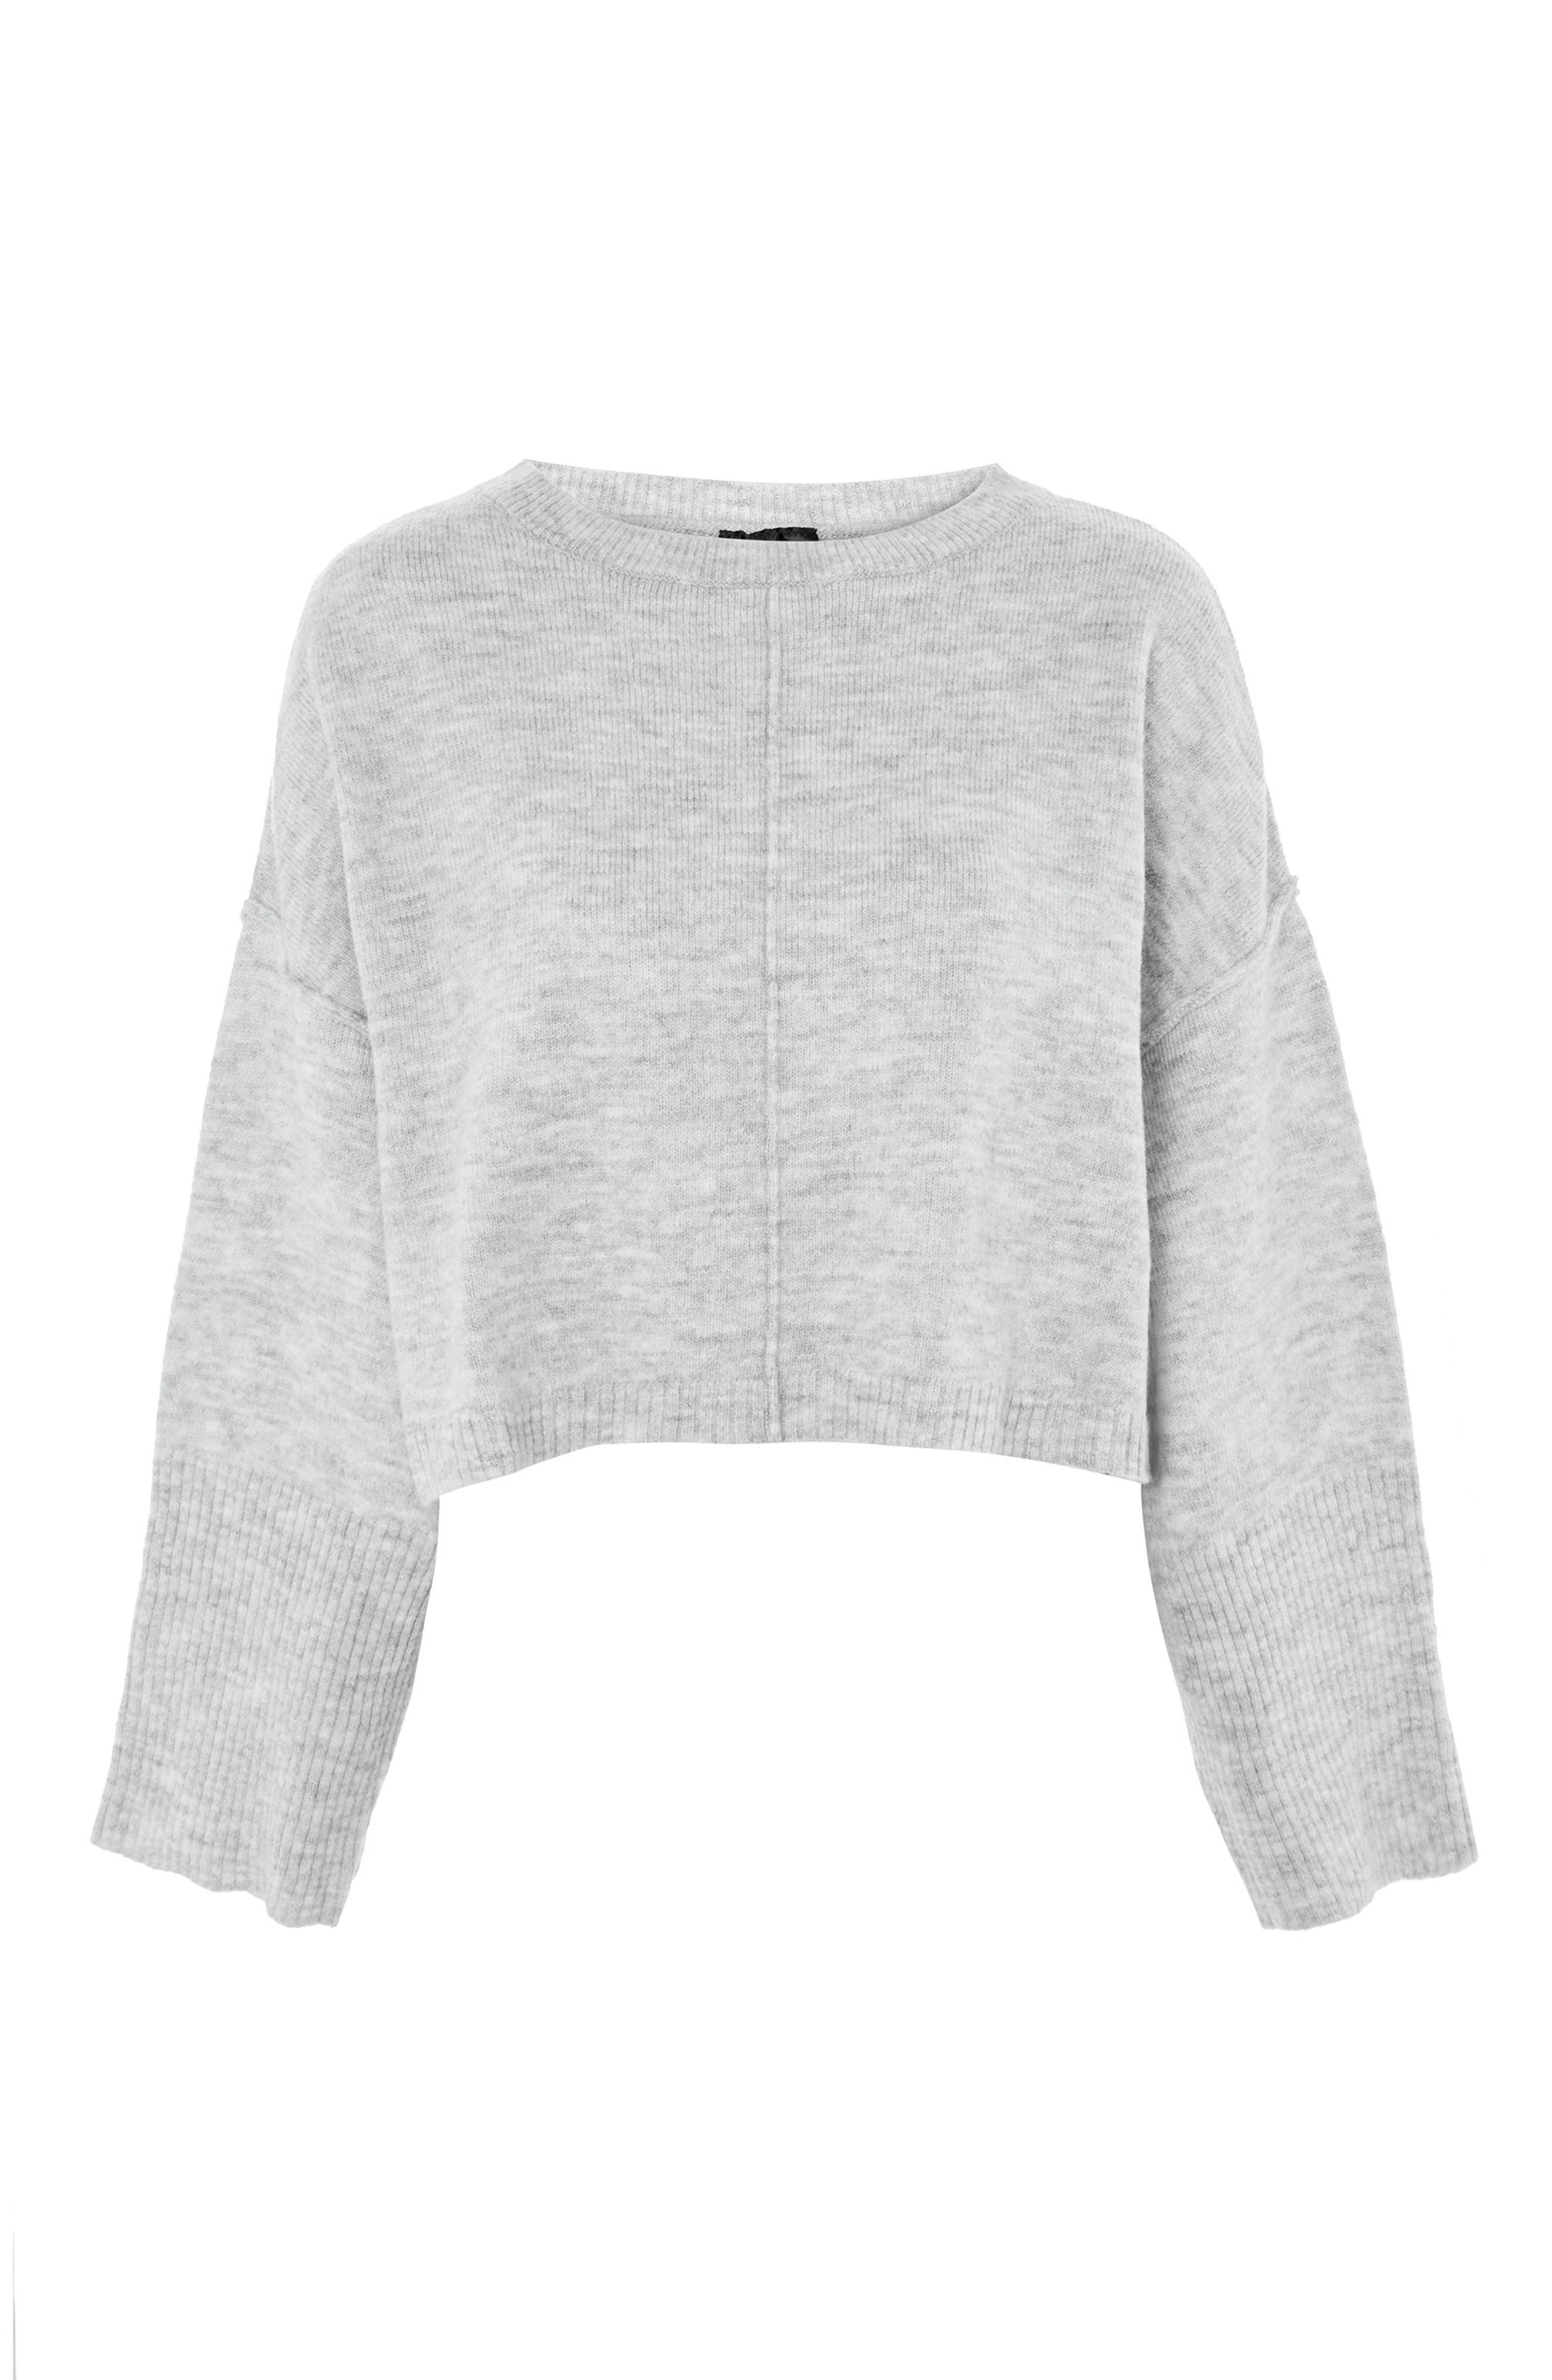 Wide Sleeve Crop Sweater,                             Alternate thumbnail 4, color,                             020